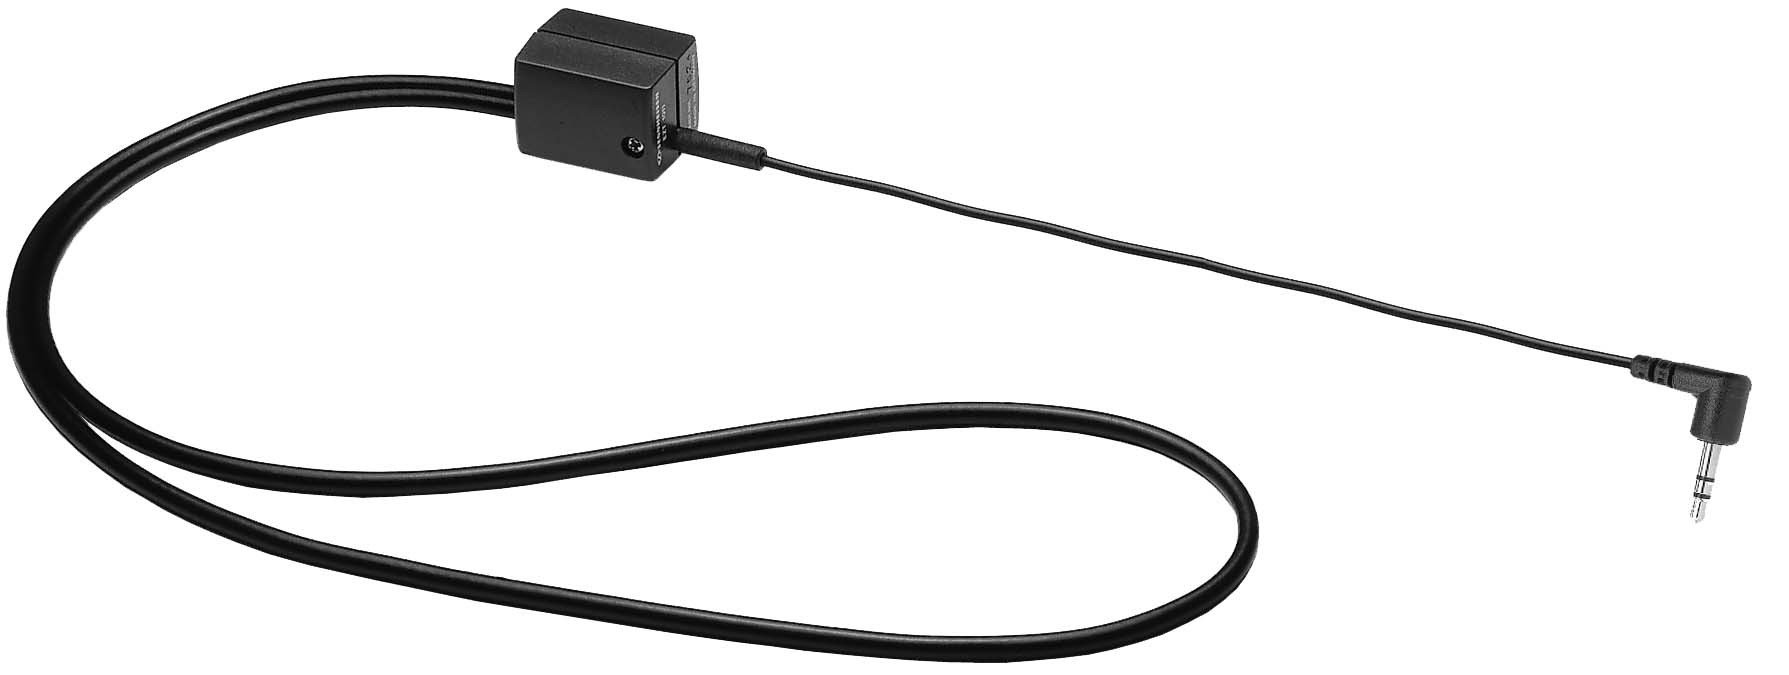 EZT-1011 Induction Neckloop, 3.5-mm plug